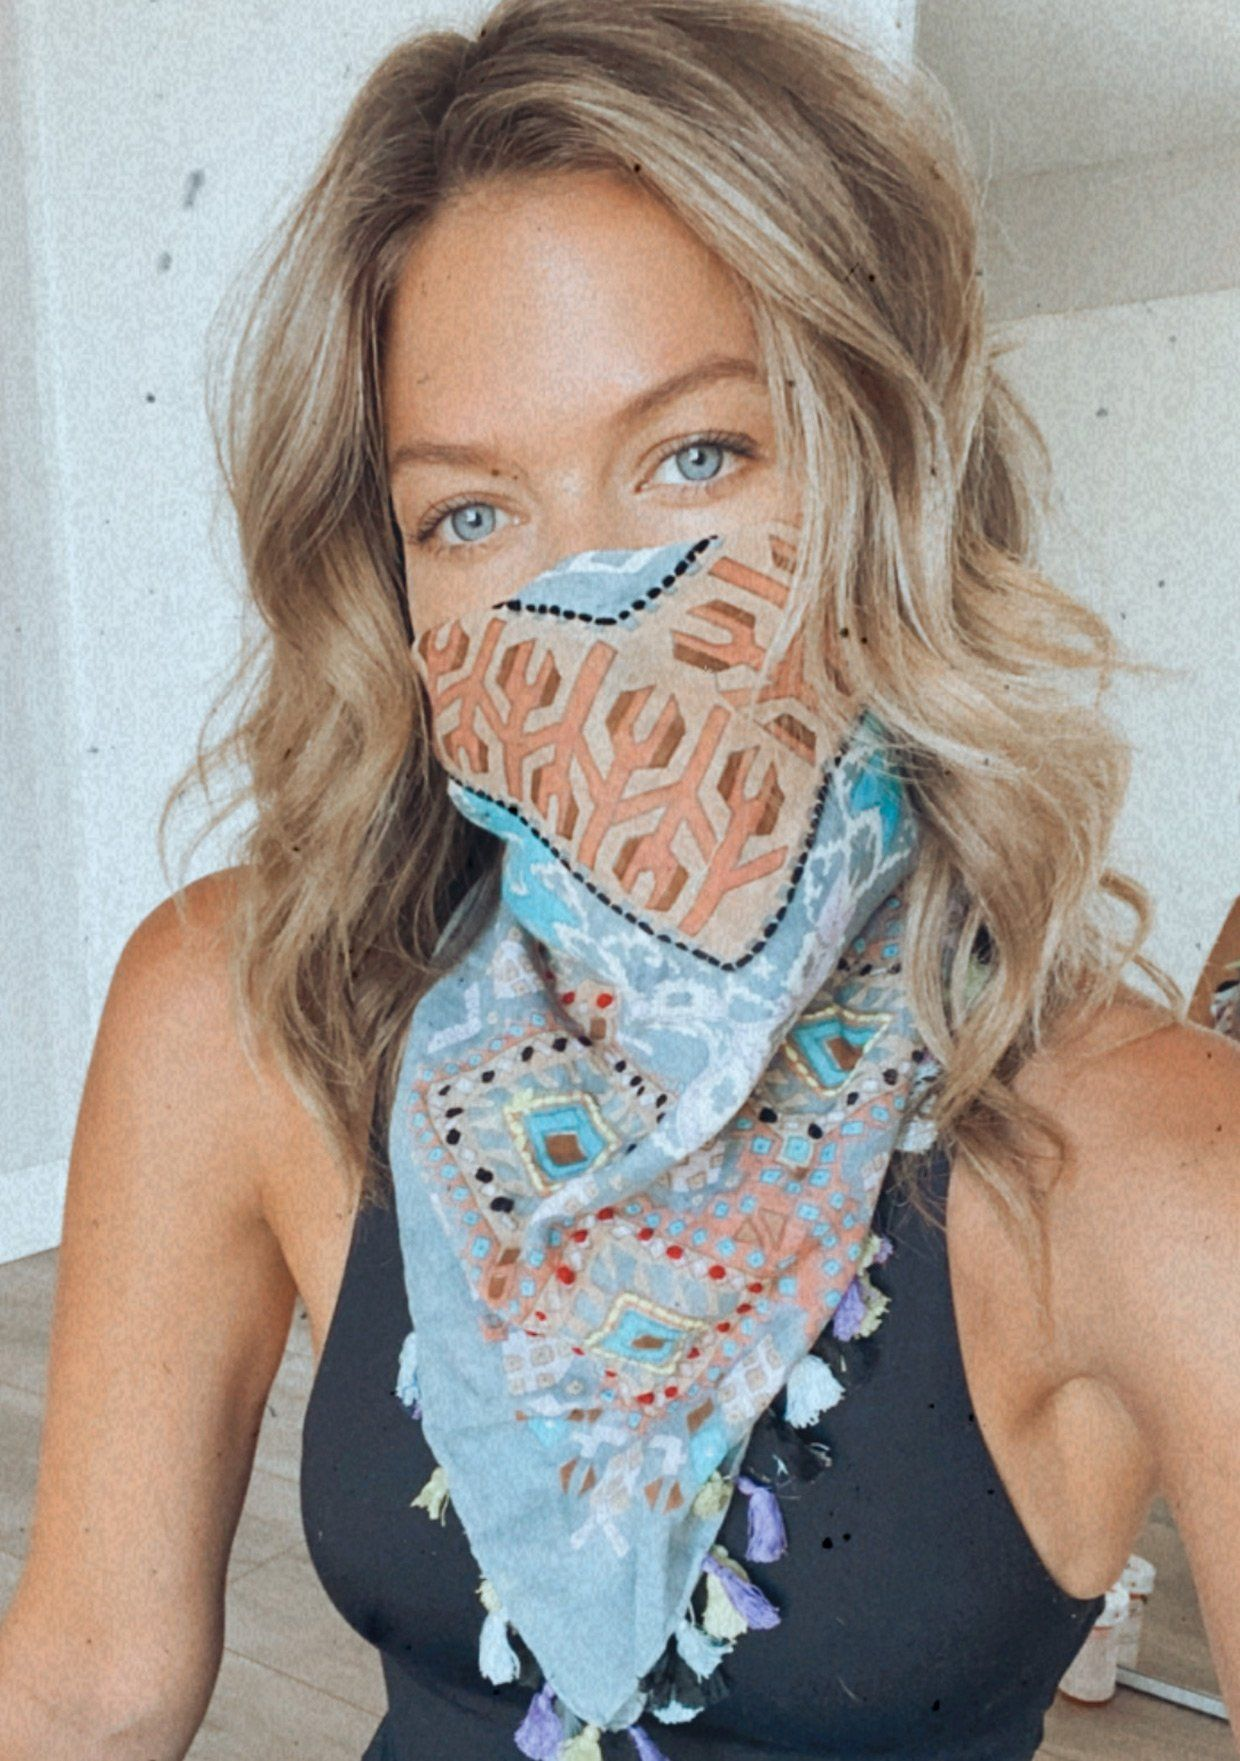 [Color: Grey] Keep your bohemian flair with this beautifully detailed scarf that doubles over as a face mask. A mix of purples, blues, grays, and tassels add an eclectic quality to this functional and versatile statement piece. Make this scarf a part of your day to day boho style! Stay safe and protect those around you.